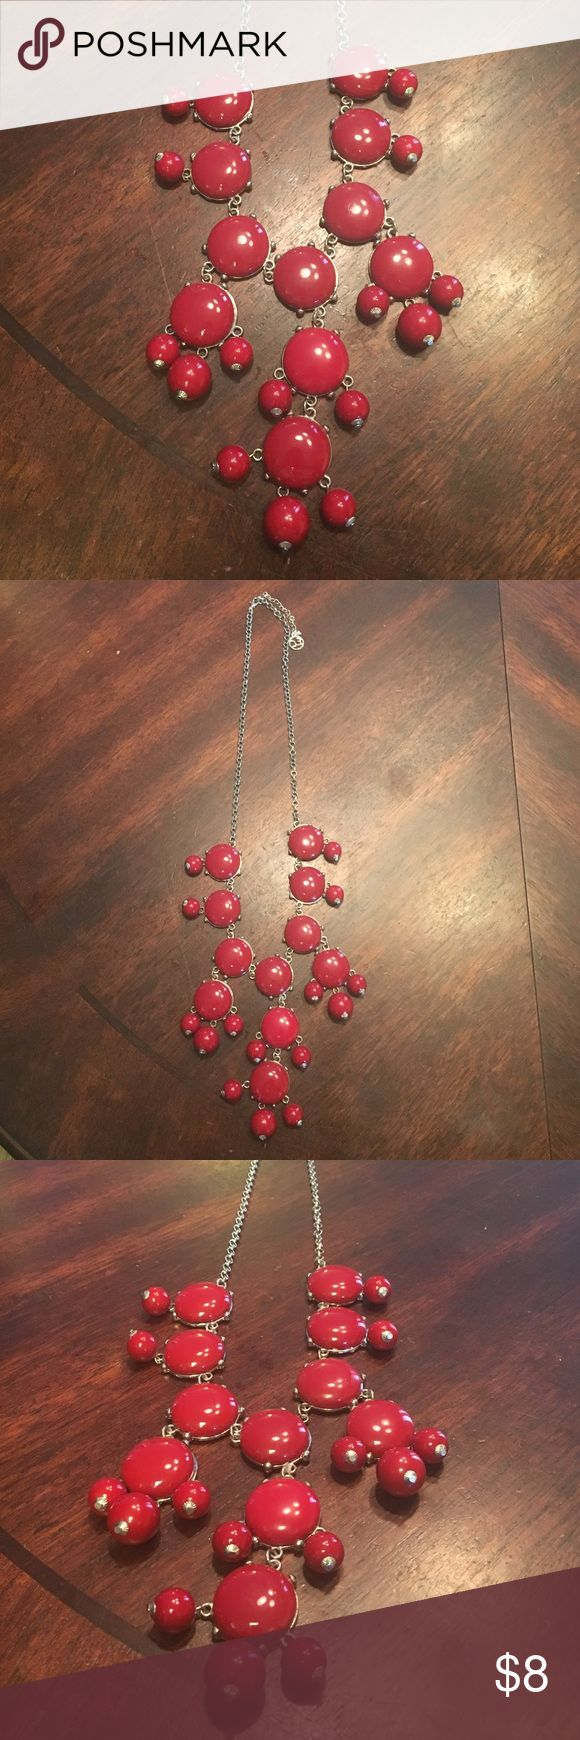 Cute Red Bubble necklace Long red bubble necklace. Cute and fashionable. Can wear with many options. Jewelry Necklaces